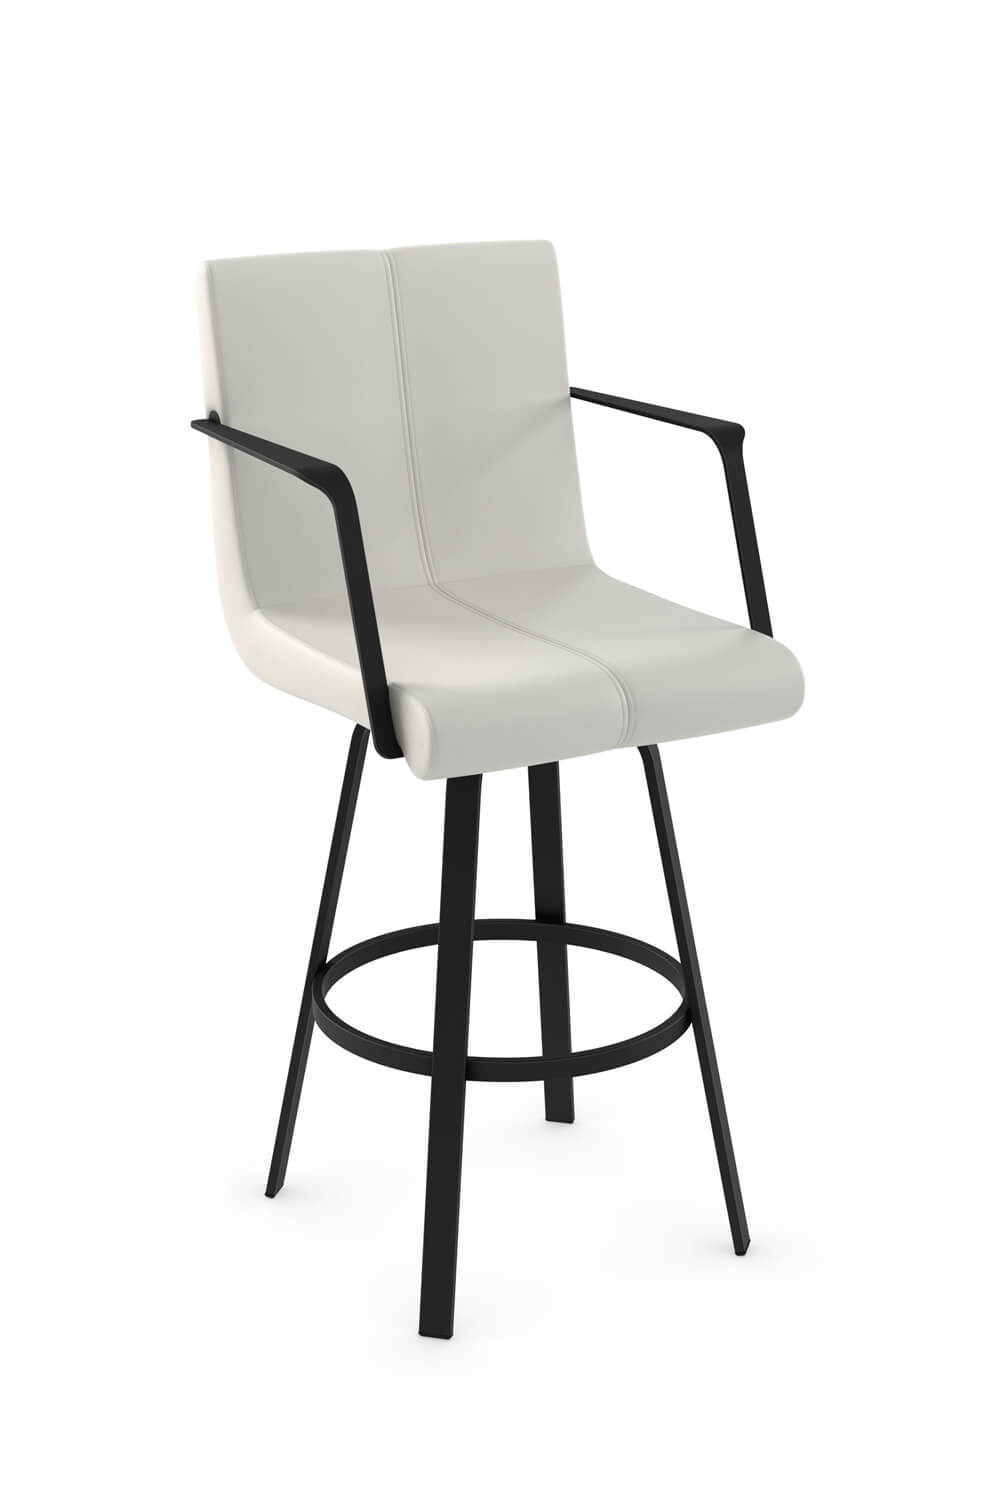 Edward Upholstered Swivel Bar Stool with Arms